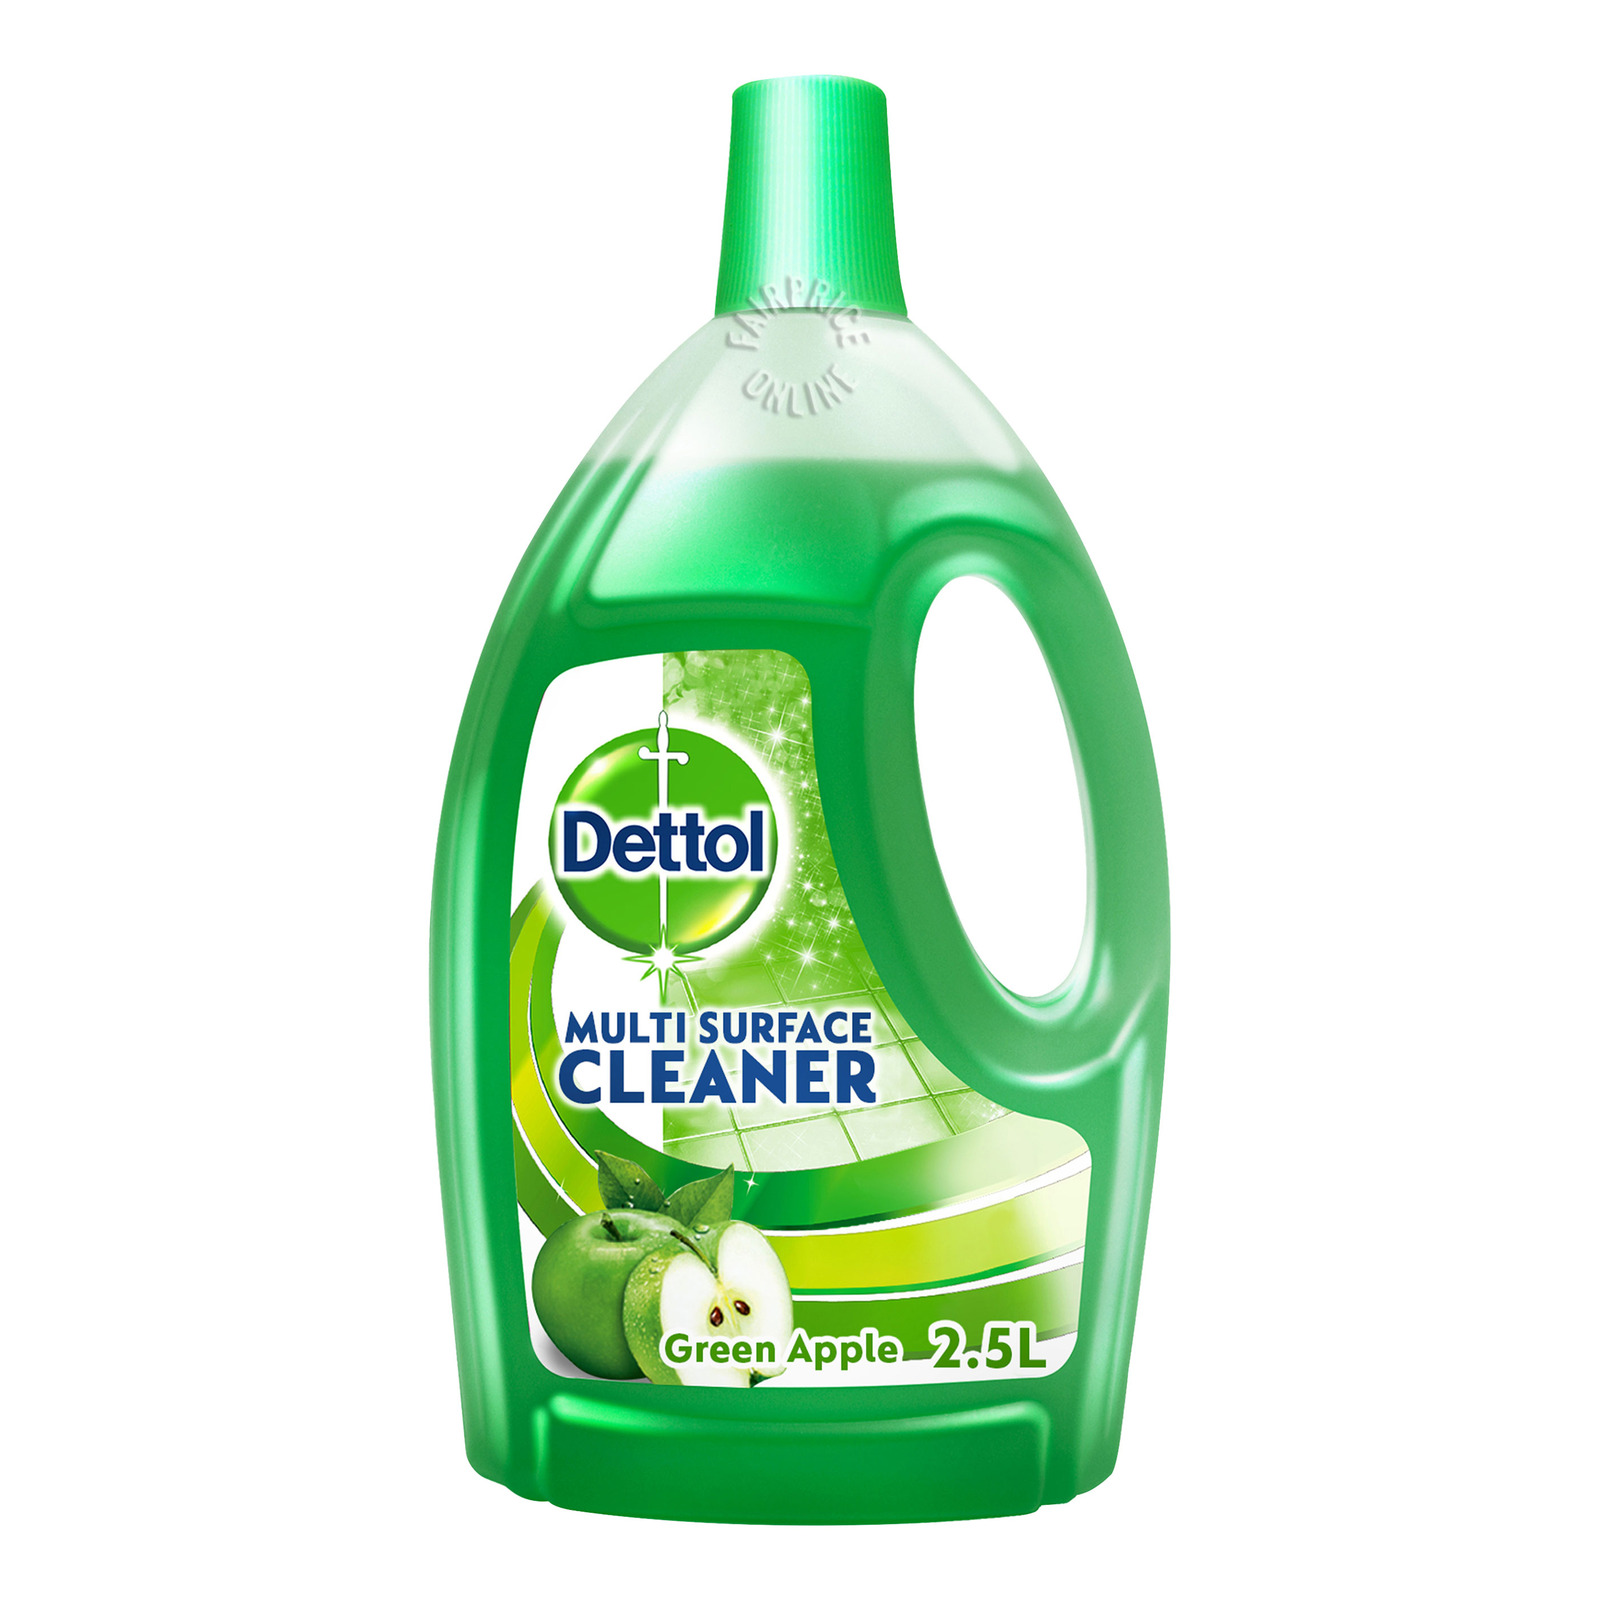 Dettol 4 in 1 Multi Surface Cleaner - Green Apple